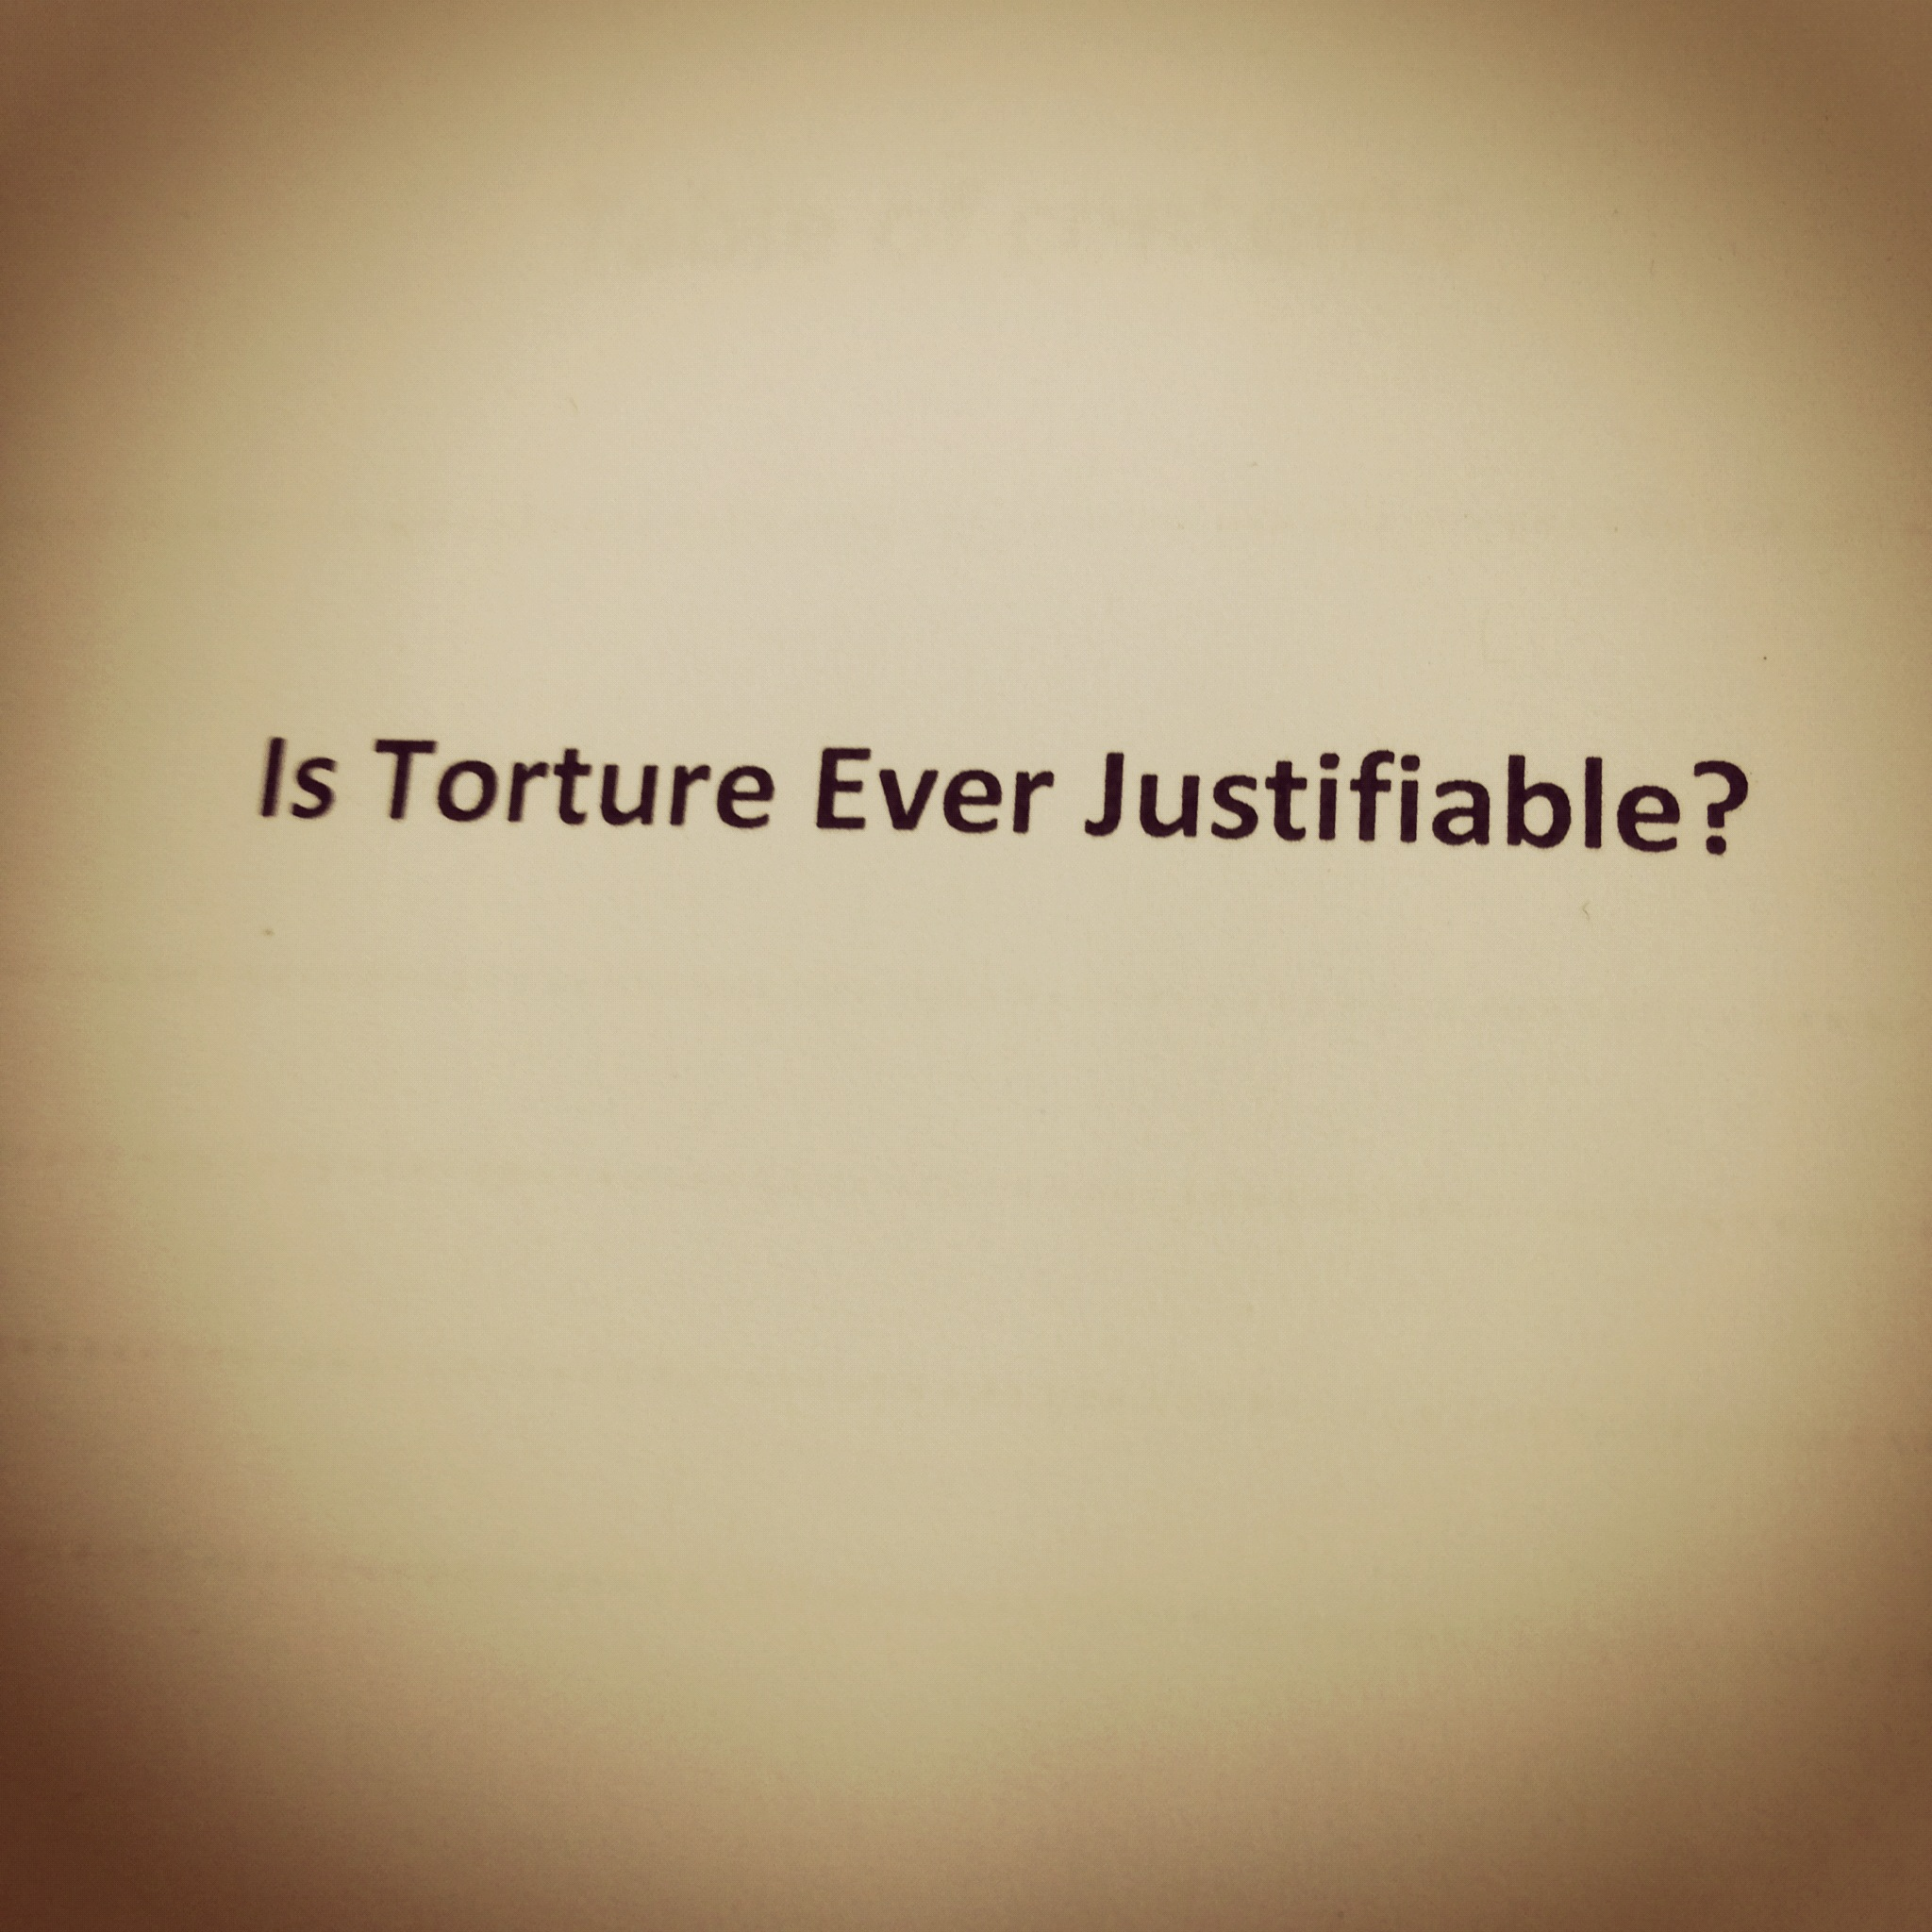 torture is ever justificable In this essay, i will demonstrate why torture should never acceptable, not matter  the  gaining strategy from terrorists, and whether they believe that is justifiable.